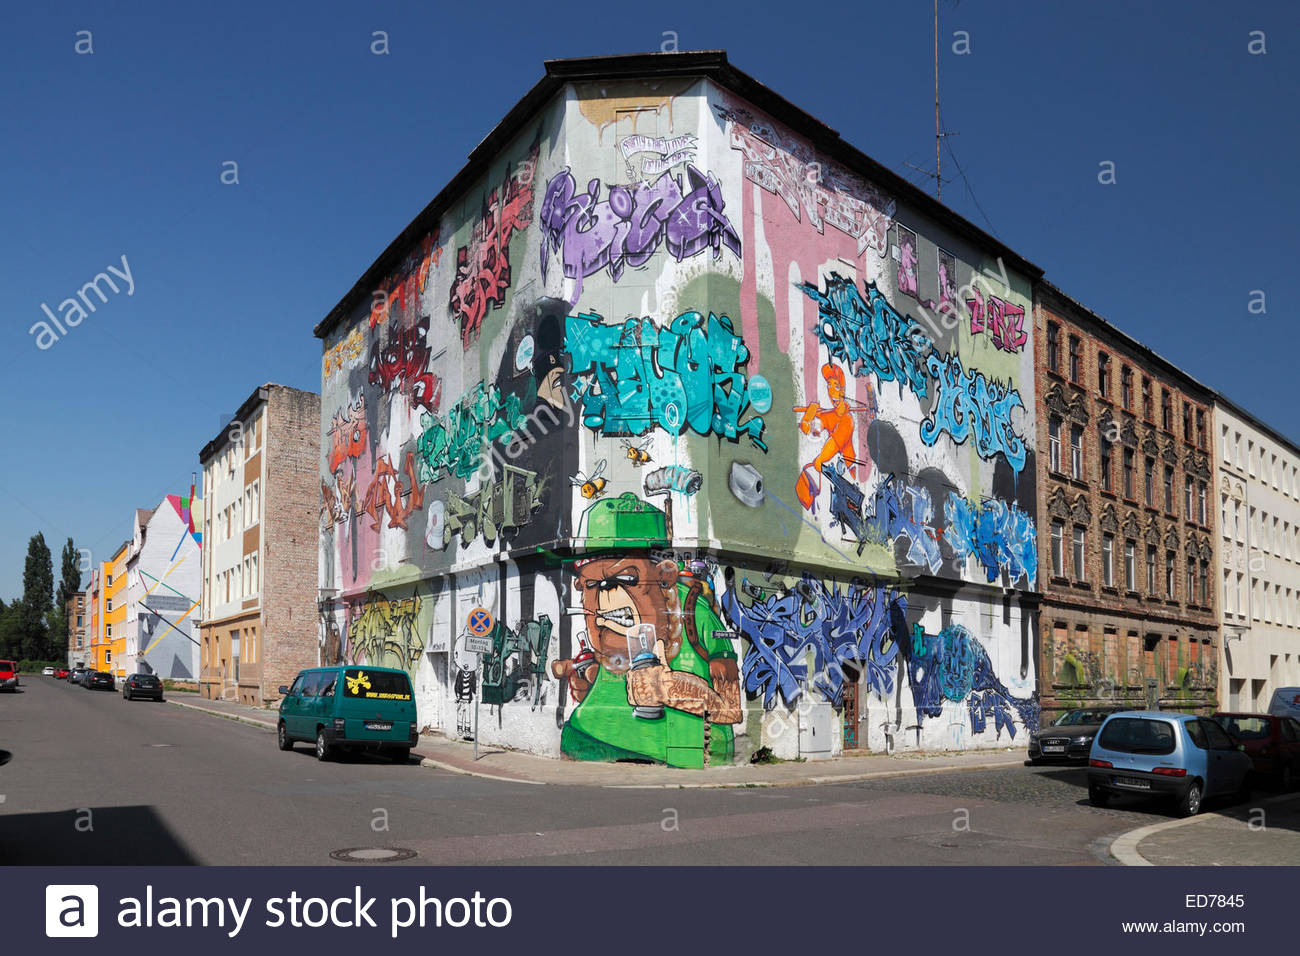 graffito art near the central station in Halle (Saale), Germany - Stock Image